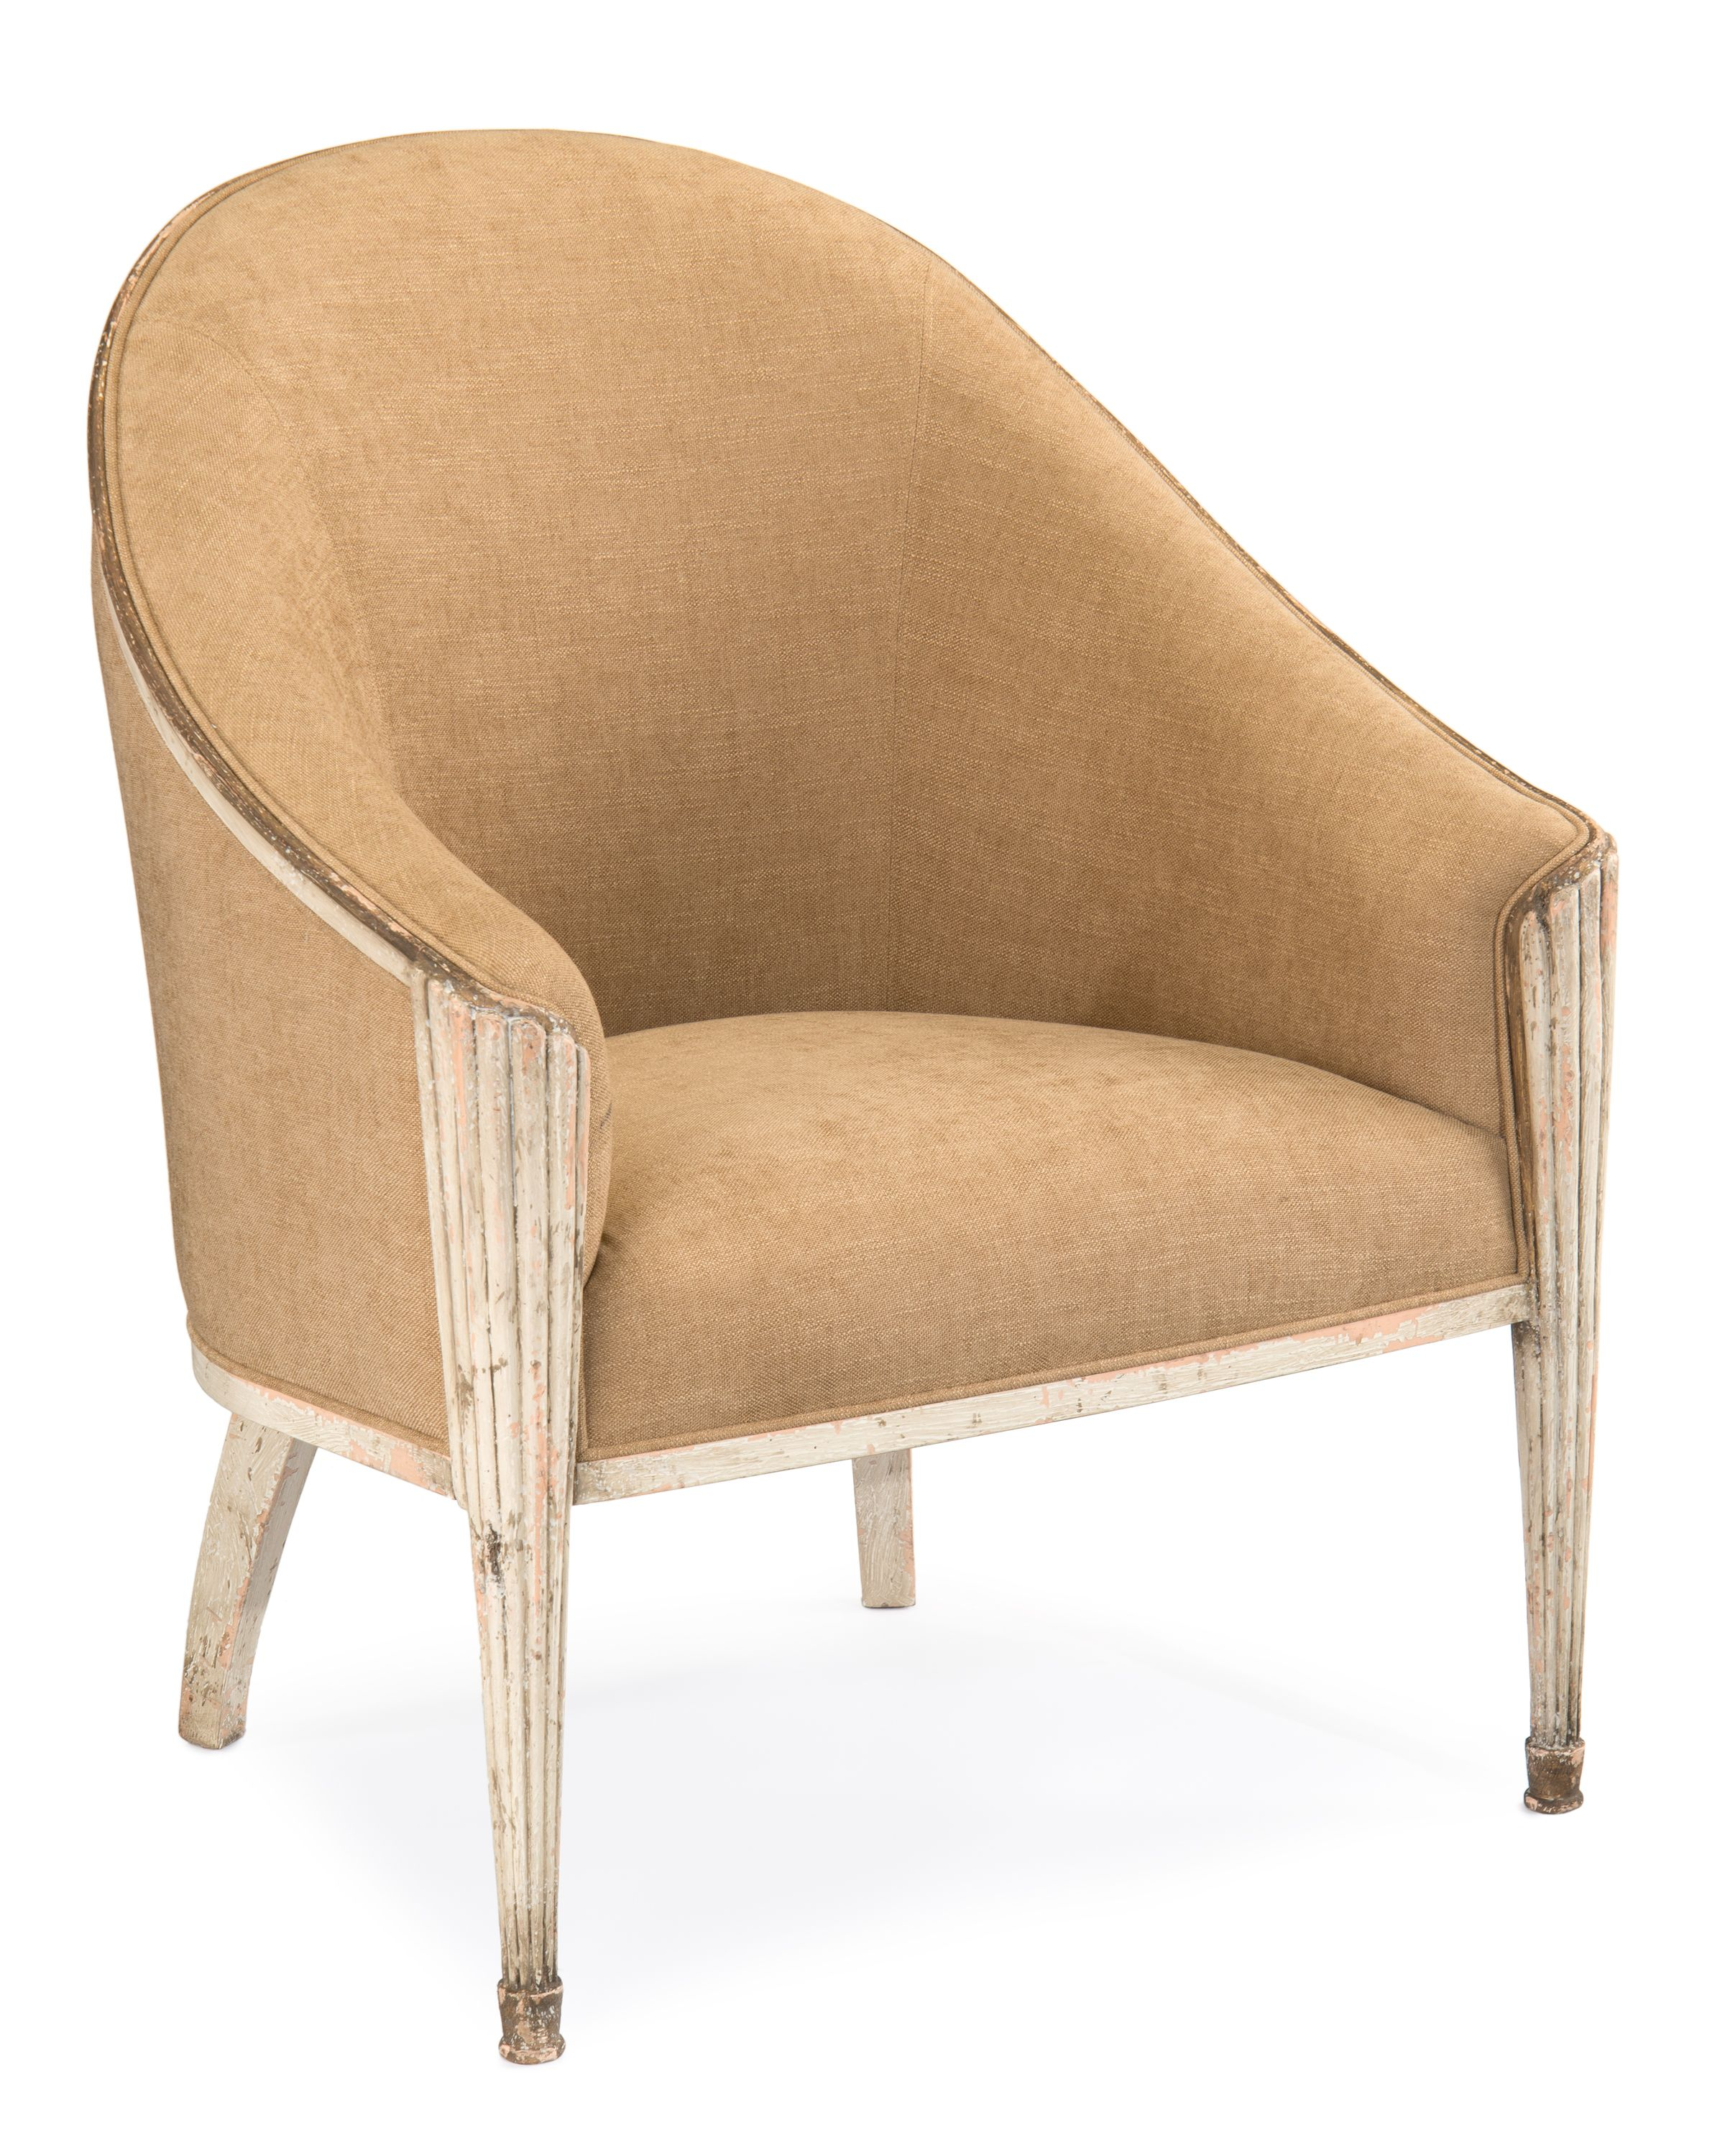 "John-Richard Fannie Bergere arm chair in Candella Ristica (Candlestick) finish . Seat 21.5""H, Arm 29.5""H, Leg 14""H #HPmkt"